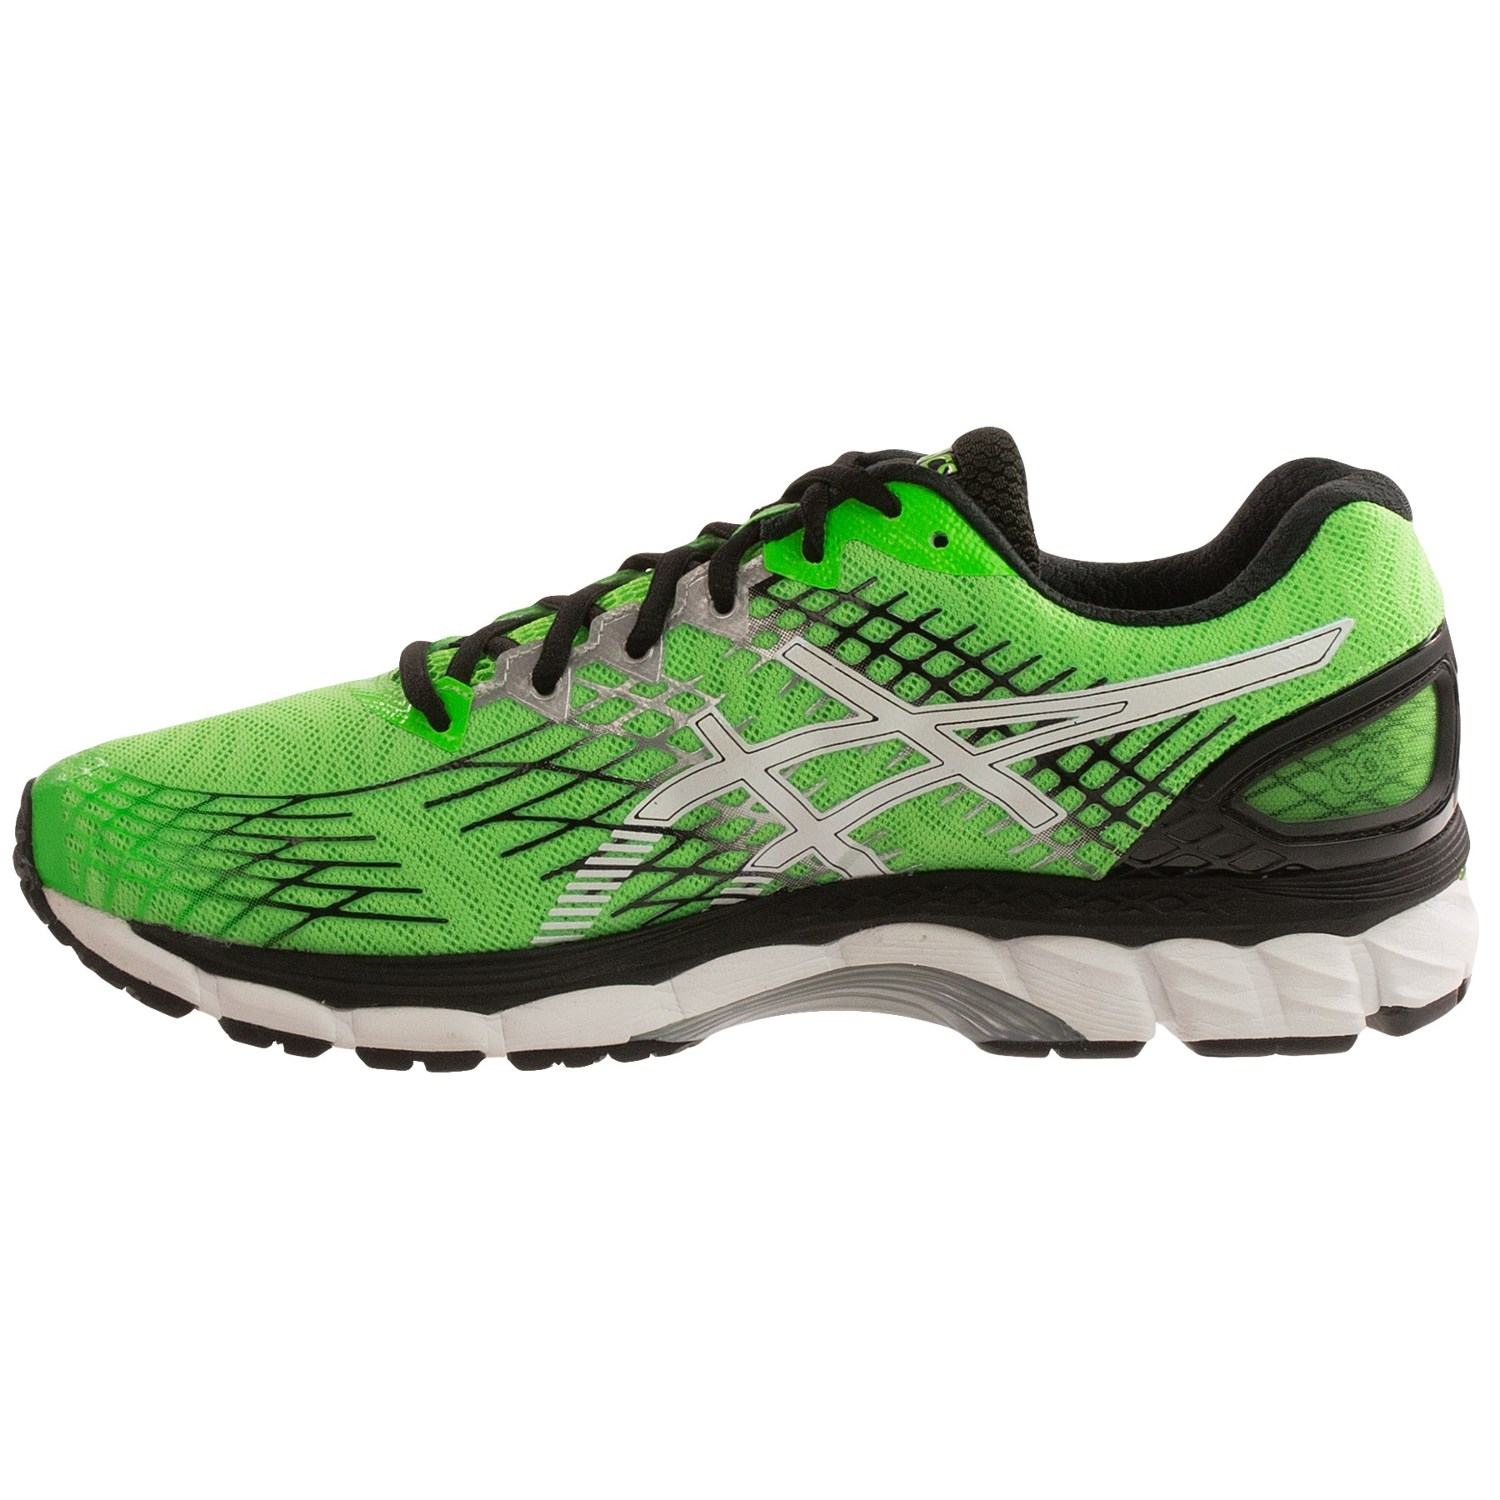 asics gel nimbus 17 running shoes for men 9140n save 20. Black Bedroom Furniture Sets. Home Design Ideas